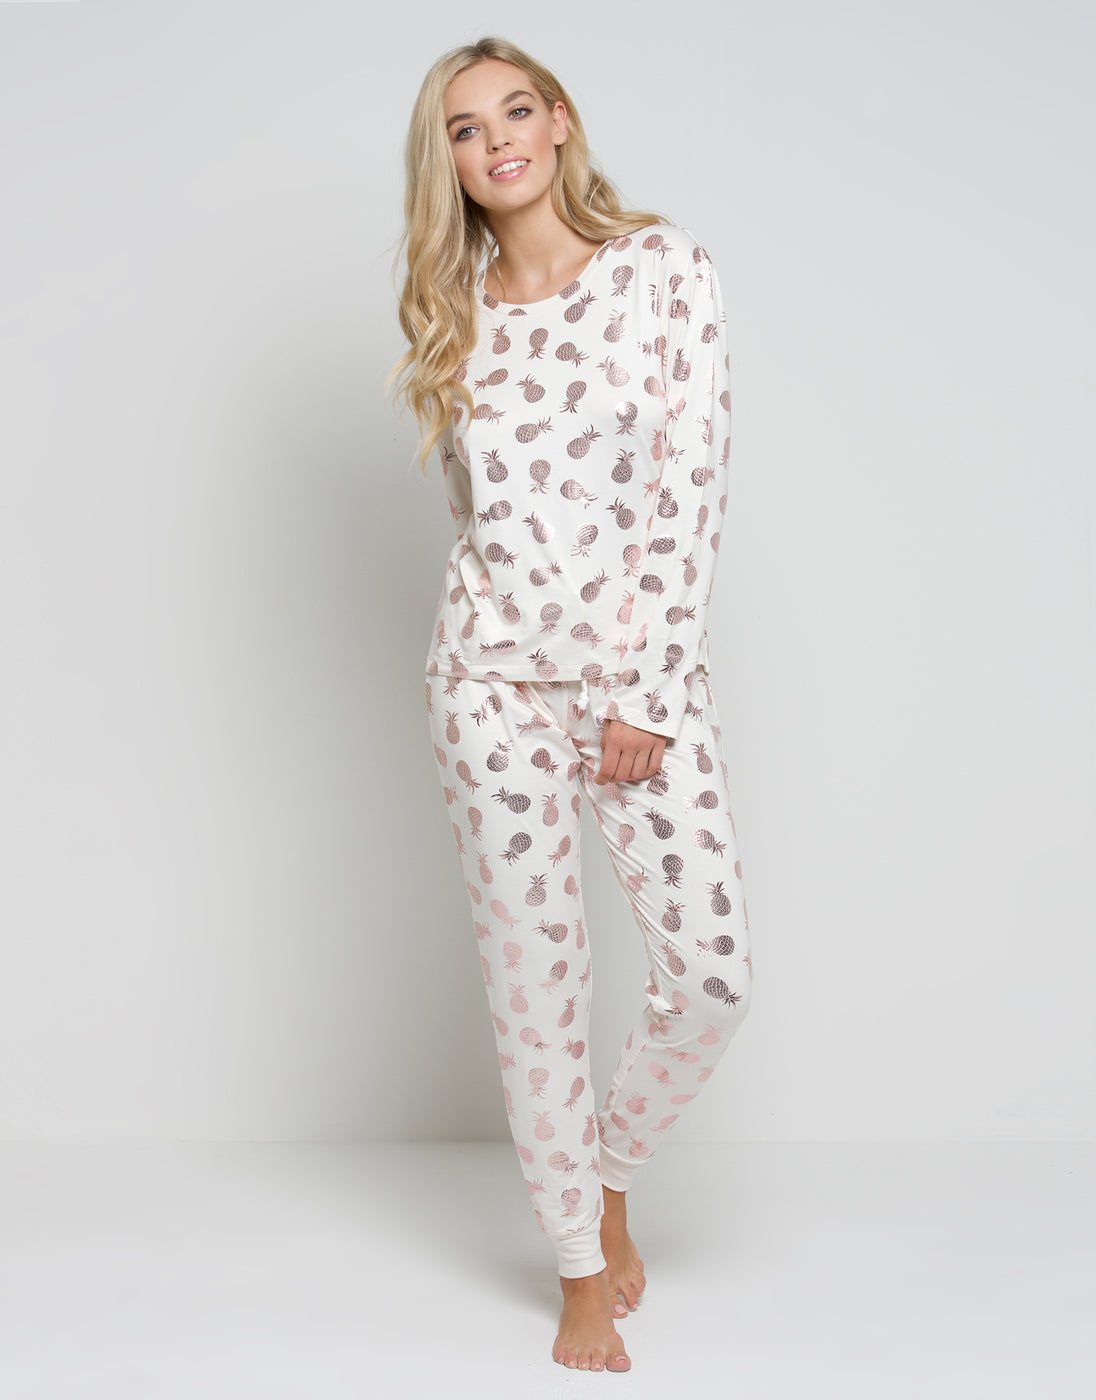 Chelsea Peers NYC White Foil Pineapple Long PJ Set - Chelsea Peers NYC